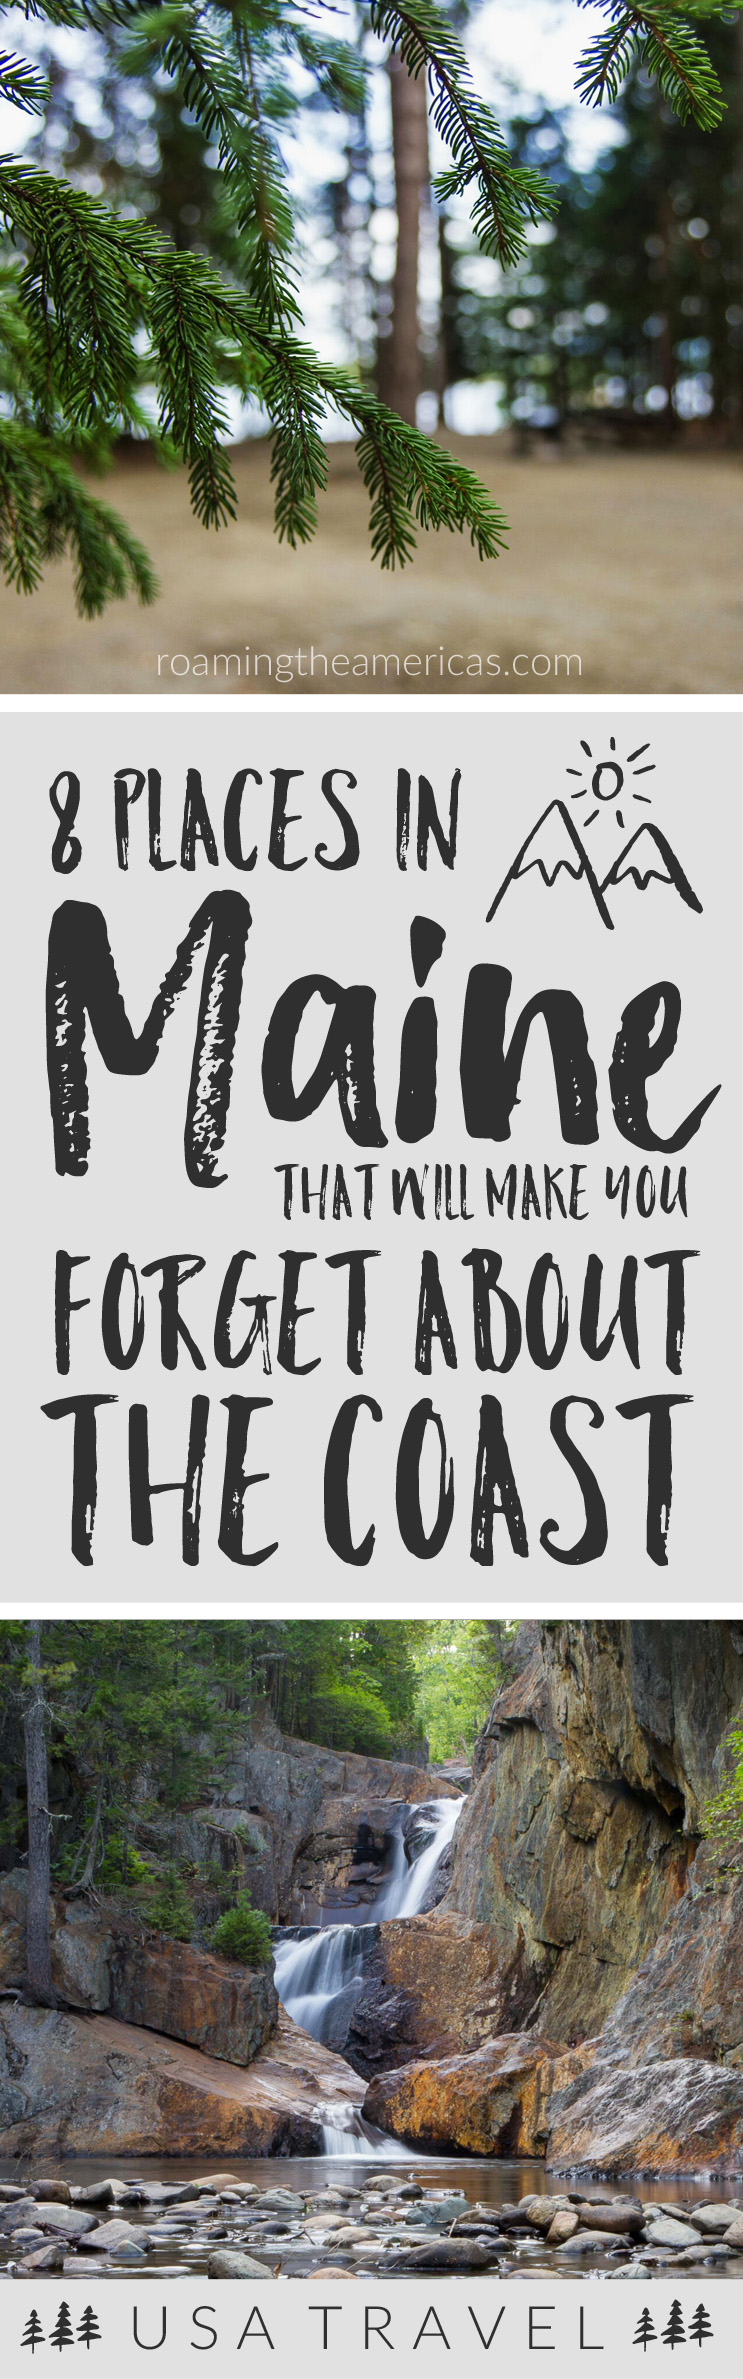 Looking for the best things to do in Maine? If you're craving a quiet, off-the-beaten-path adventure, check out this local's guide for 8 of the best spots in central and western Maine! New England travel | Maine vacation | nature and outdoor adventure #roamingtheamericas #maine #mainelife #mainevacation #newengland #bucketlist #roadtrip